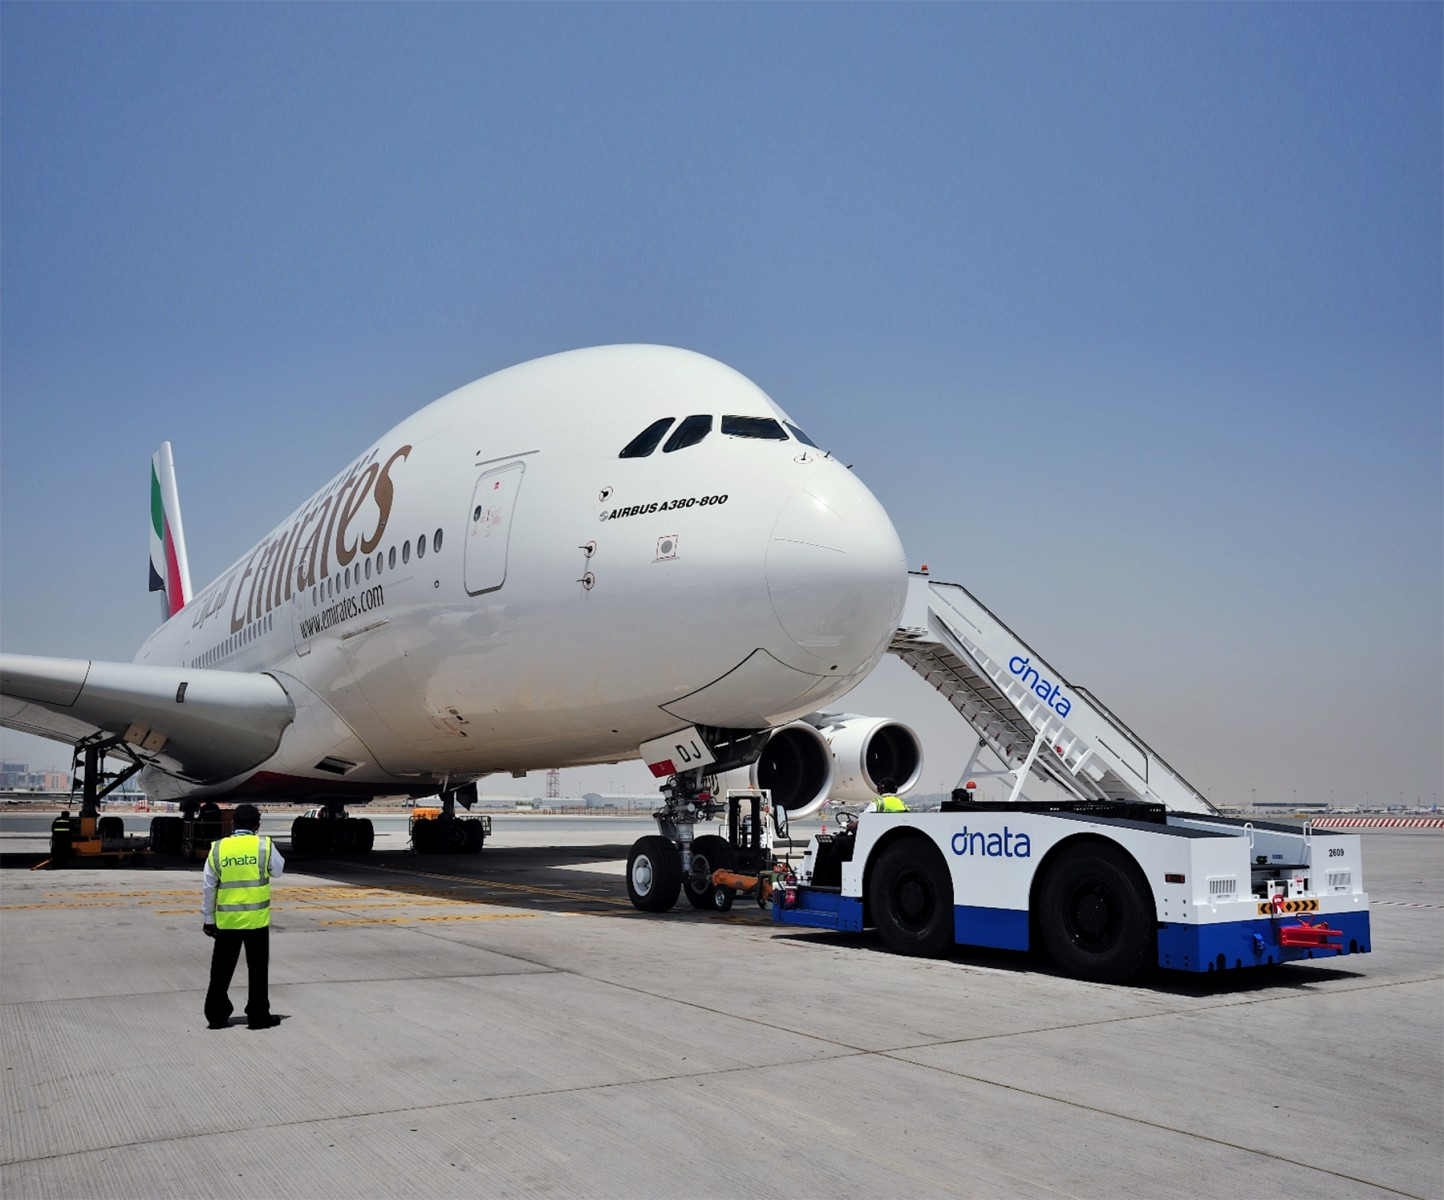 Emirates Group's business response to COVID-19